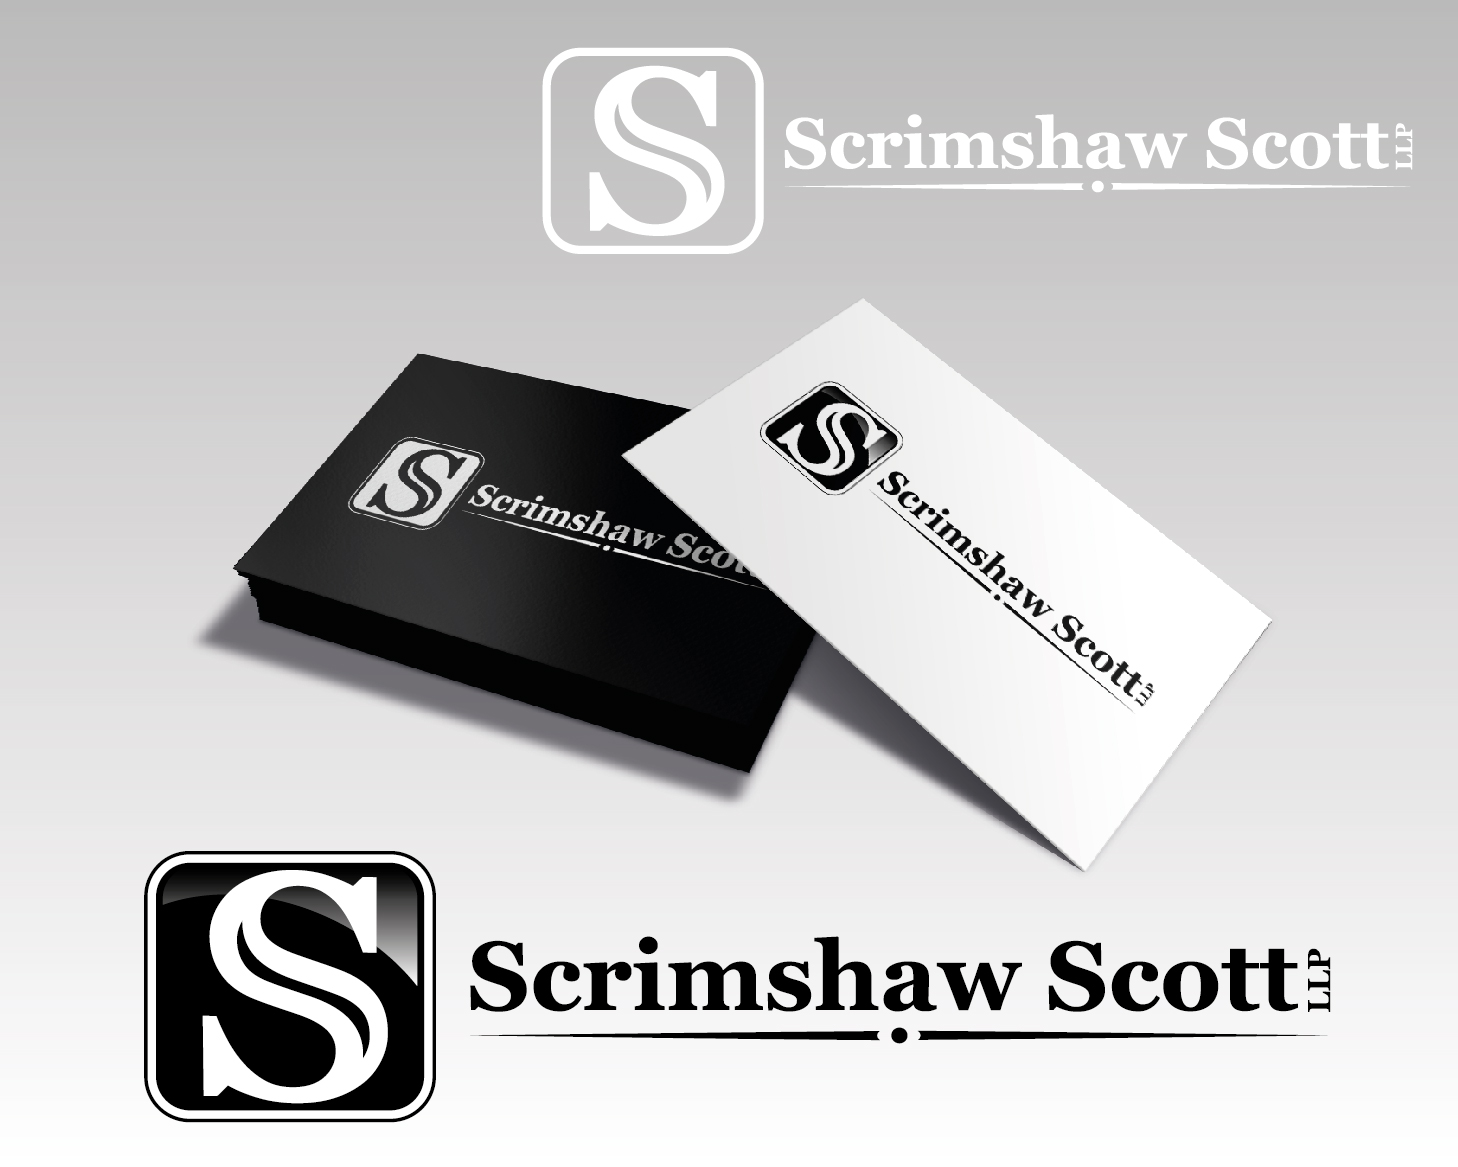 Logo Design by VENTSISLAV KOVACHEV - Entry No. 66 in the Logo Design Contest Creative Logo Design for Scrimshaw Scott LLP.